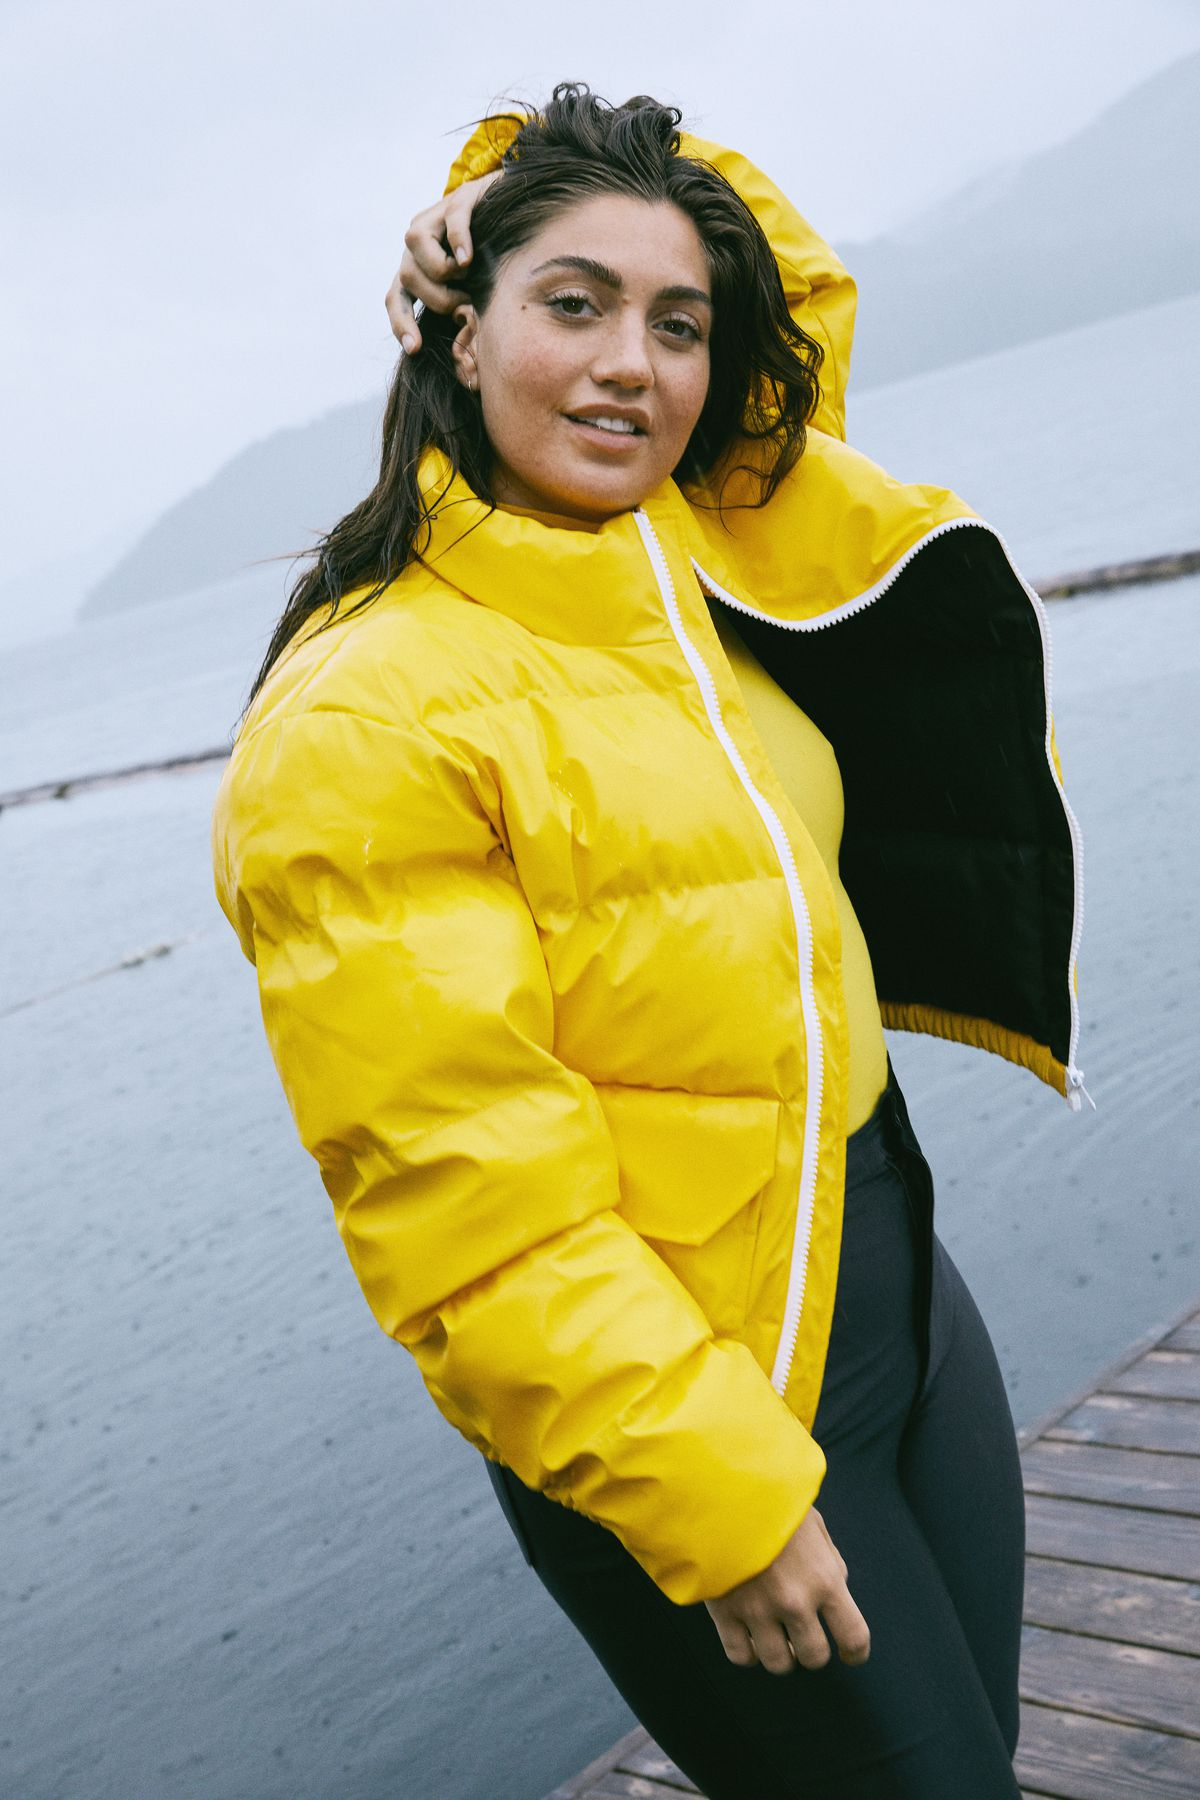 A model wears a yellow puffer jacket on a dock on a lake.